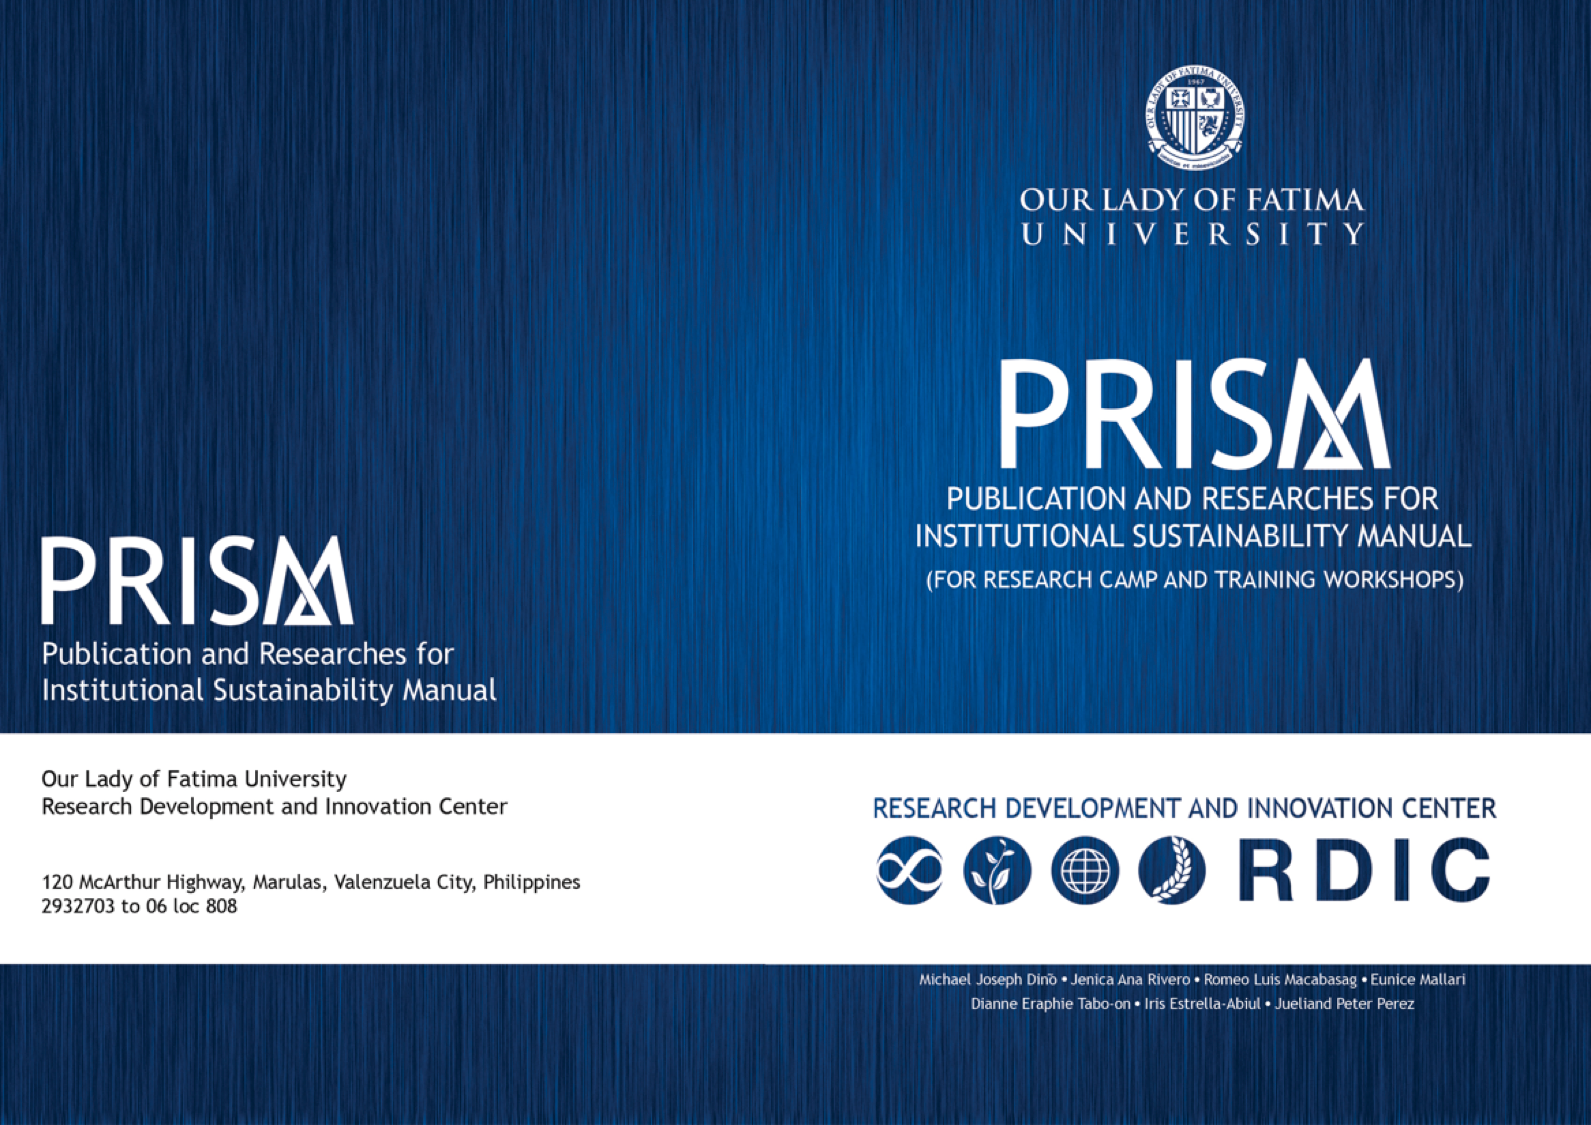 PUBLICATION AND RESEARCH FOR INSTITUTIONAL SUSTAINABILITY MANUAL (PRISM)